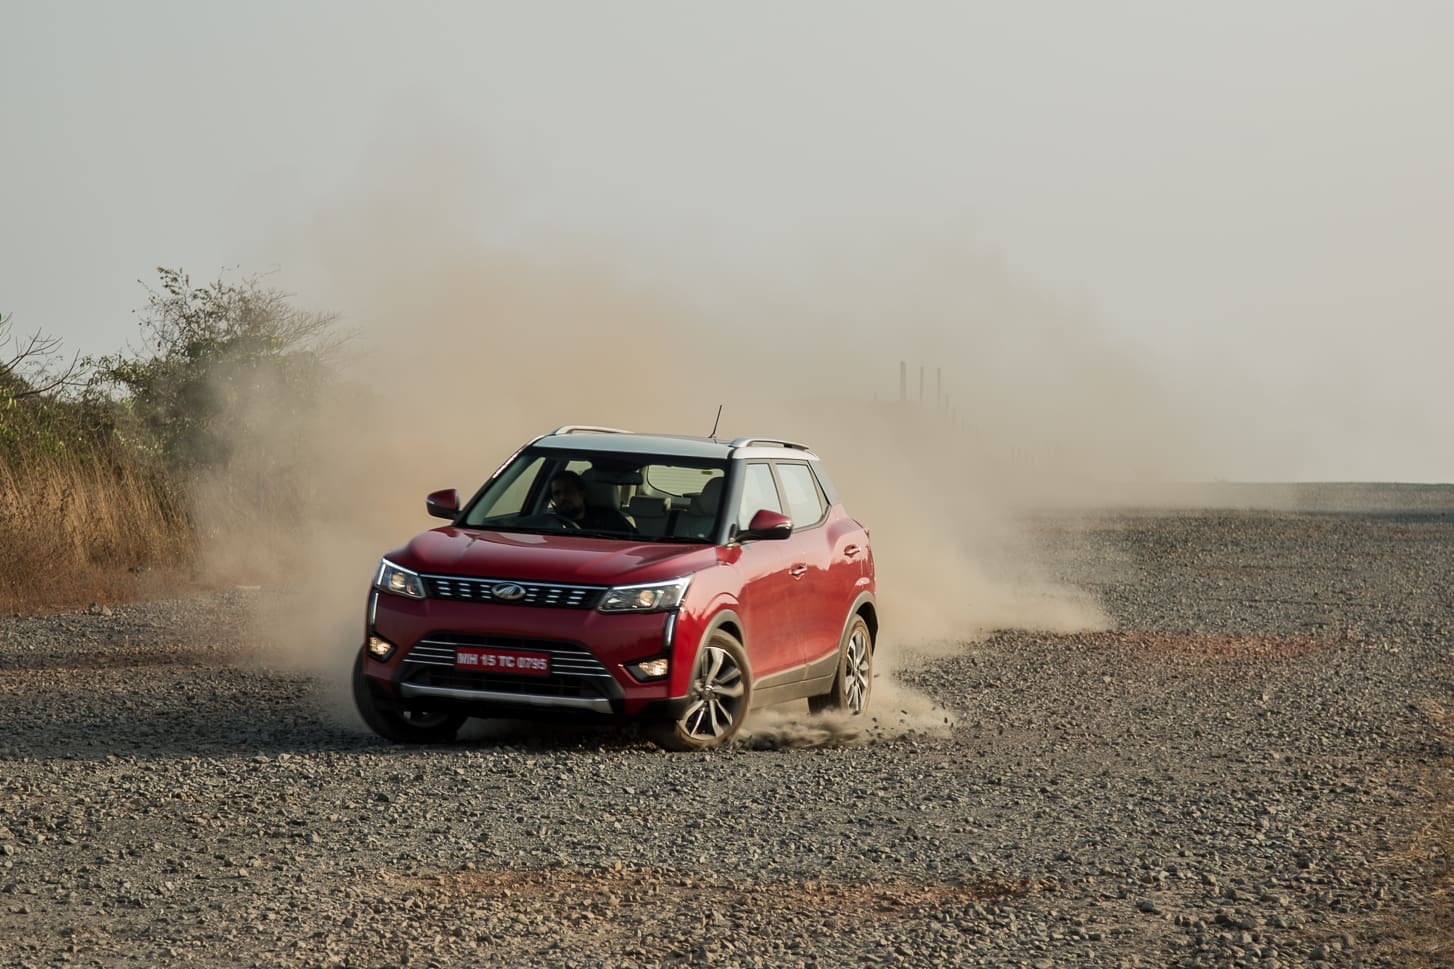 Mahindra XUV300 Diesel Review: First Drive